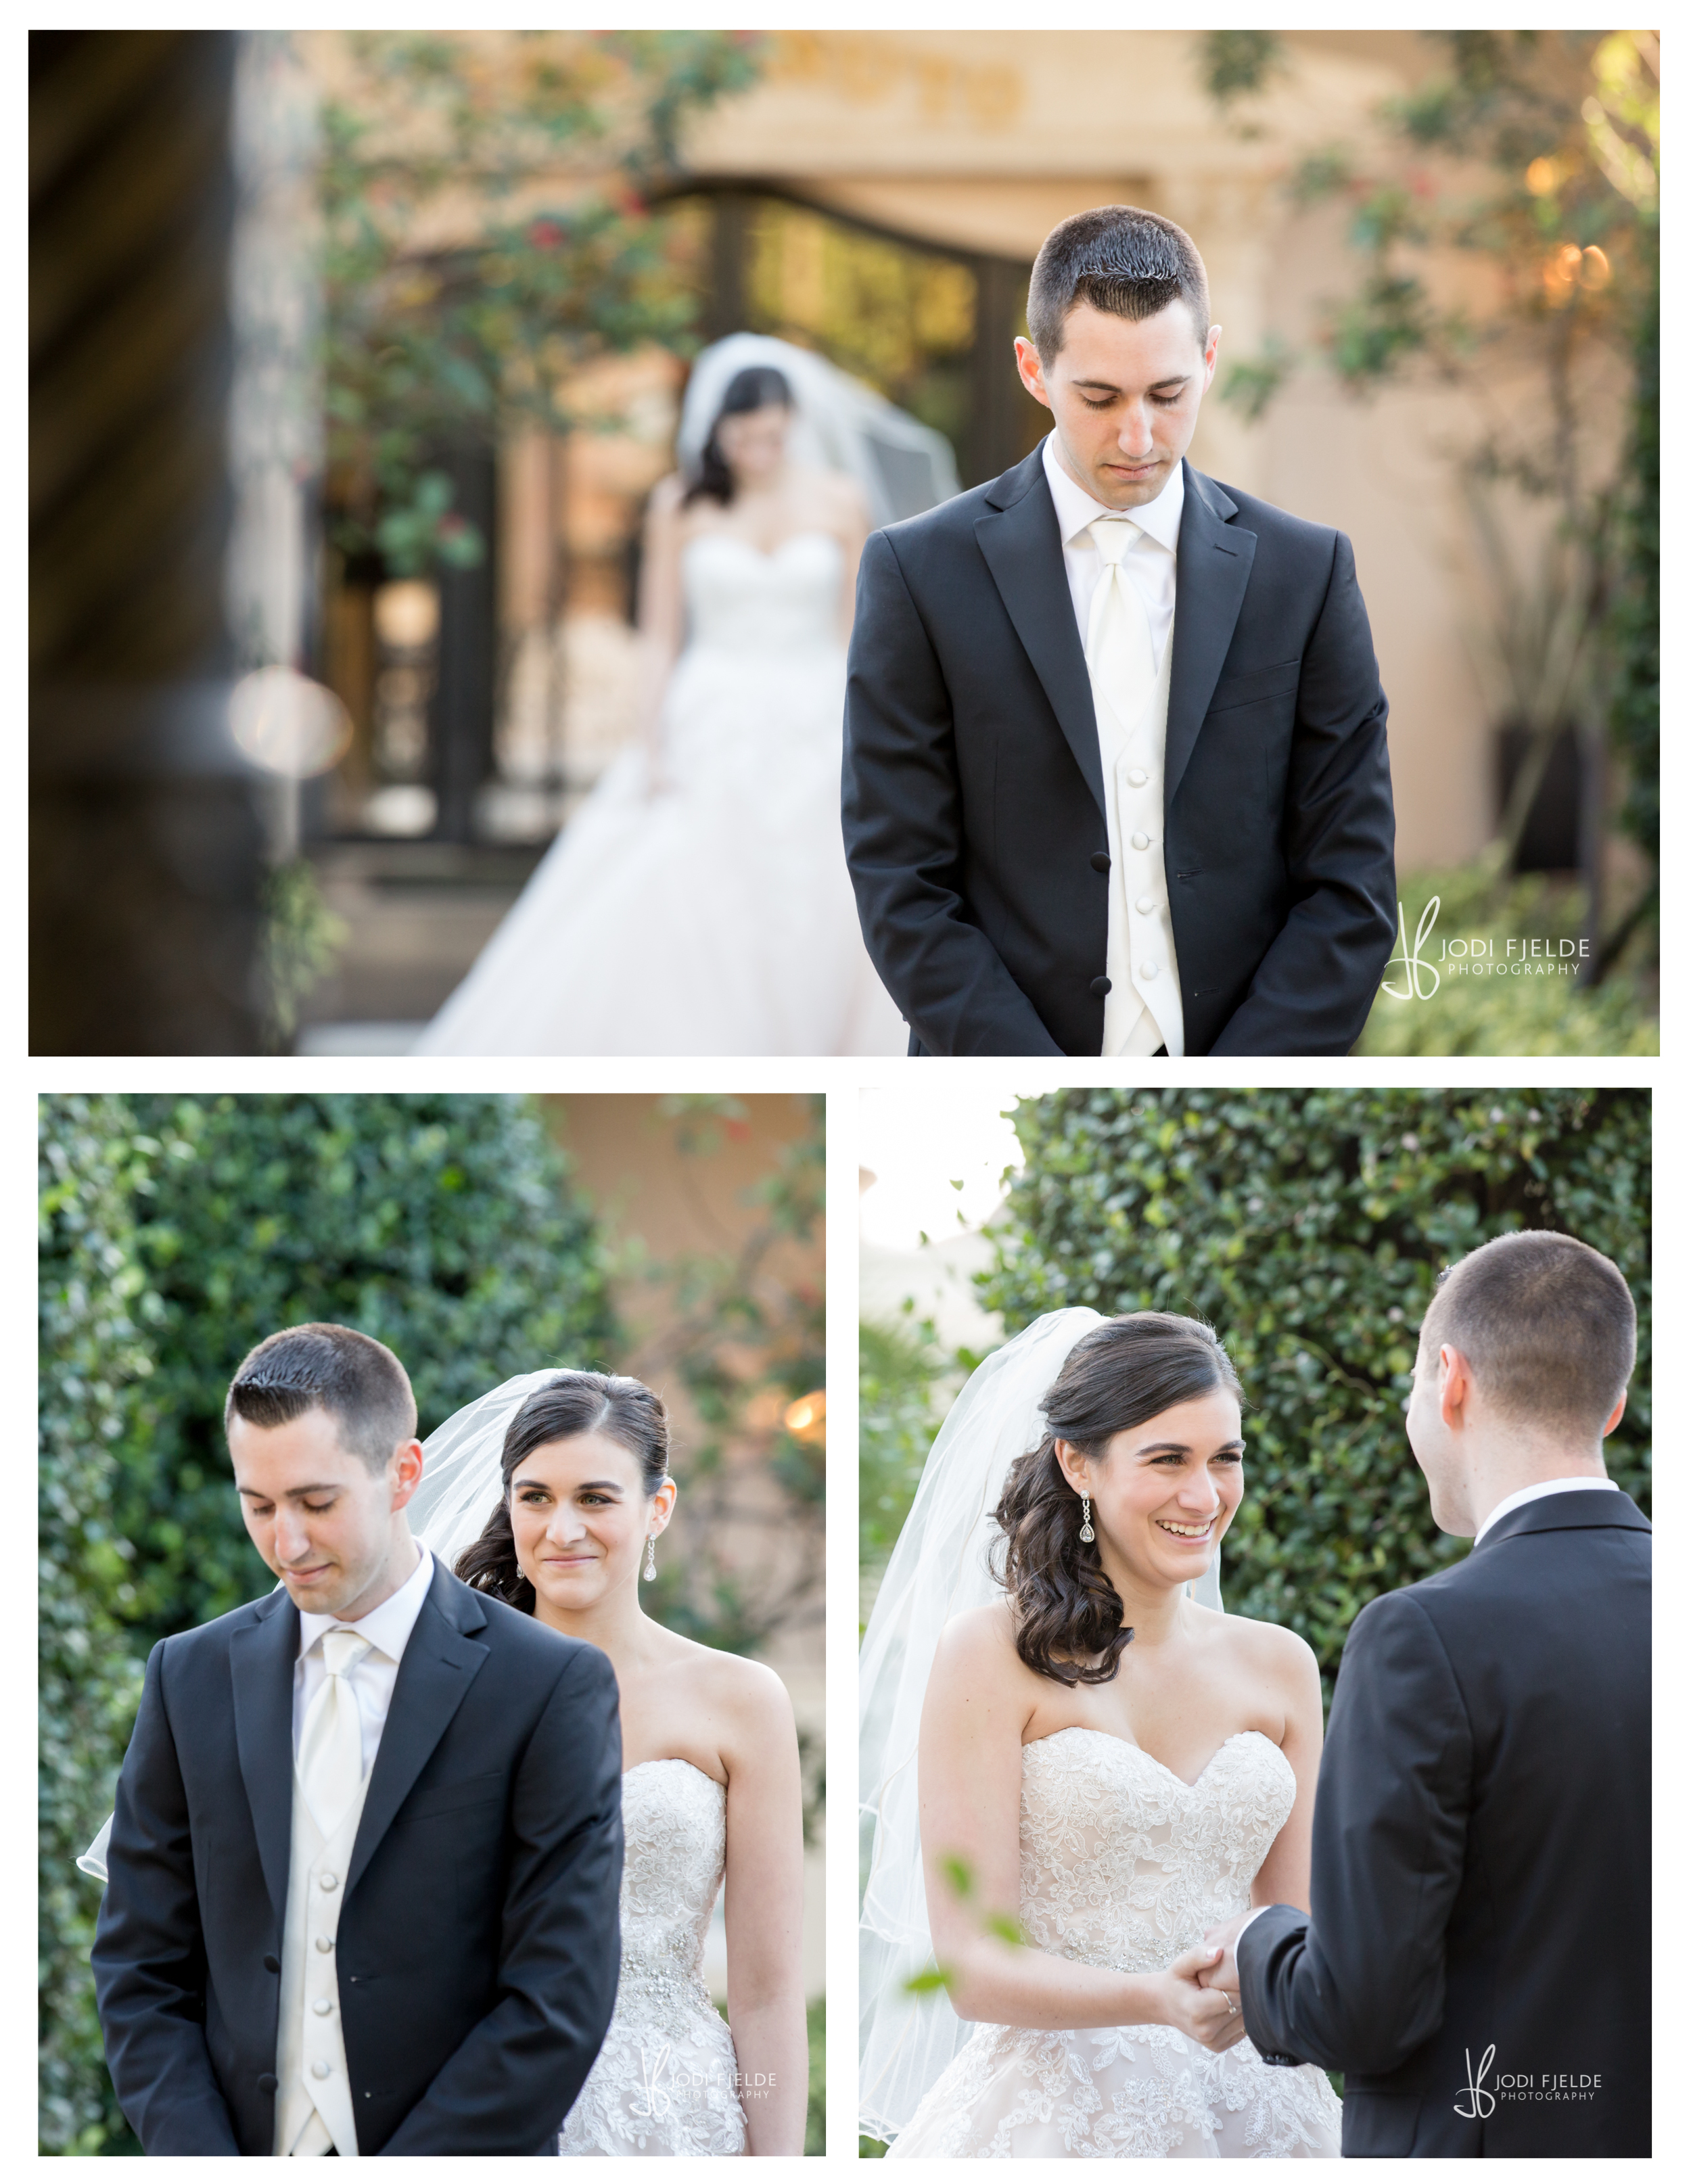 Benvenuto_Palm_Beach_Wedding_Jewish_Michelle & Jason_Jodi_Fjedle_Photography 22.jpg